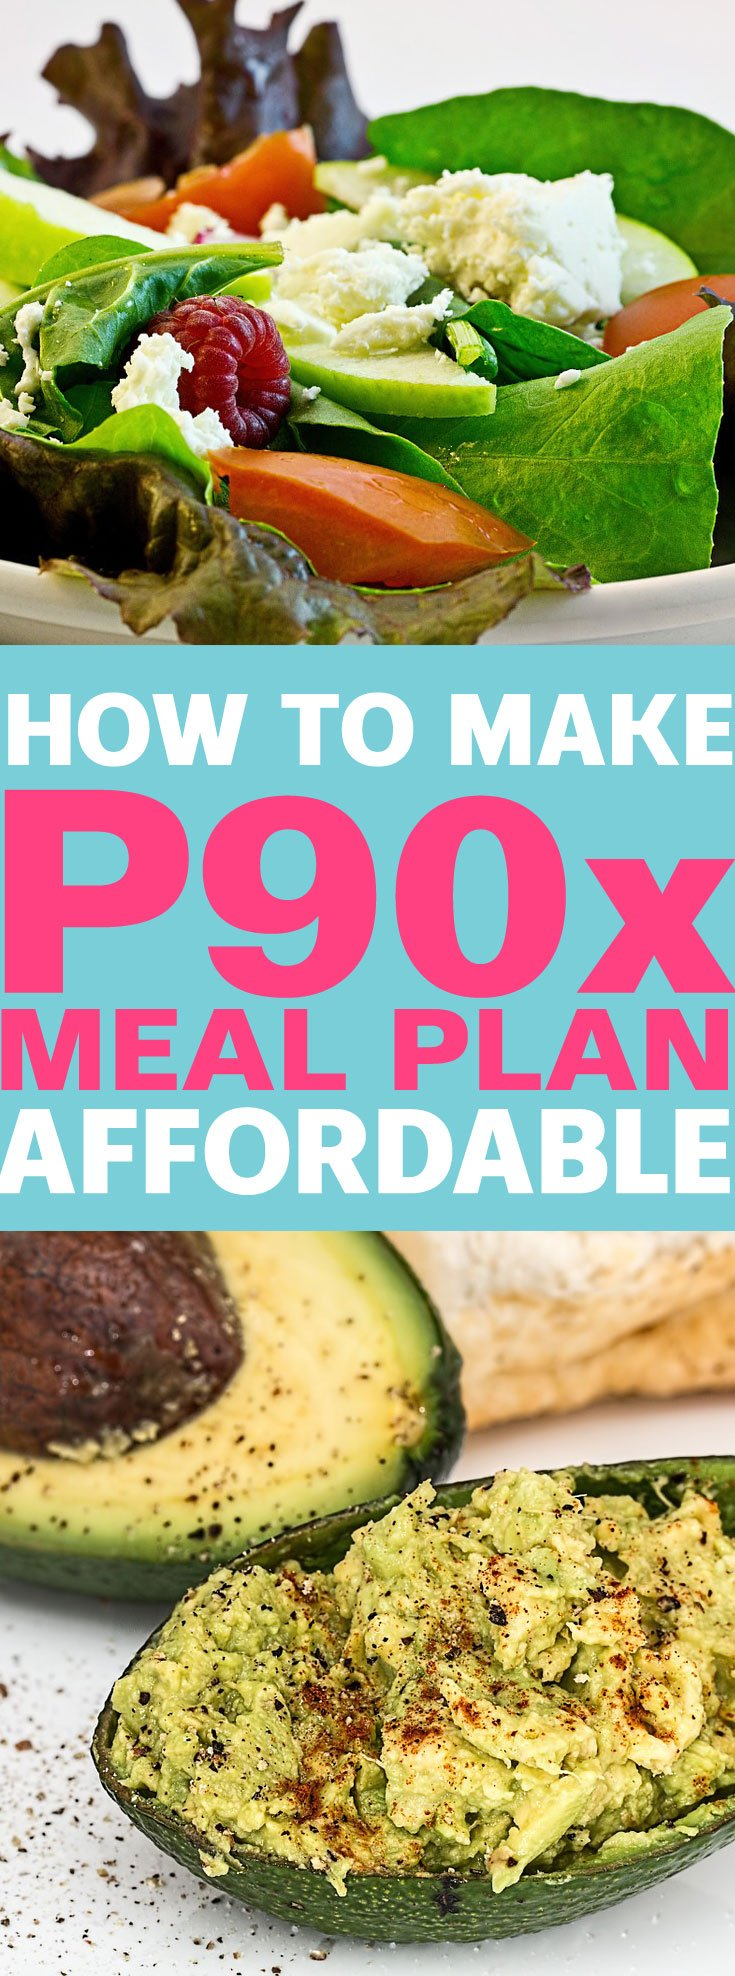 How To Make P90x Meal Plan Affordable - Free Downloads - TOP